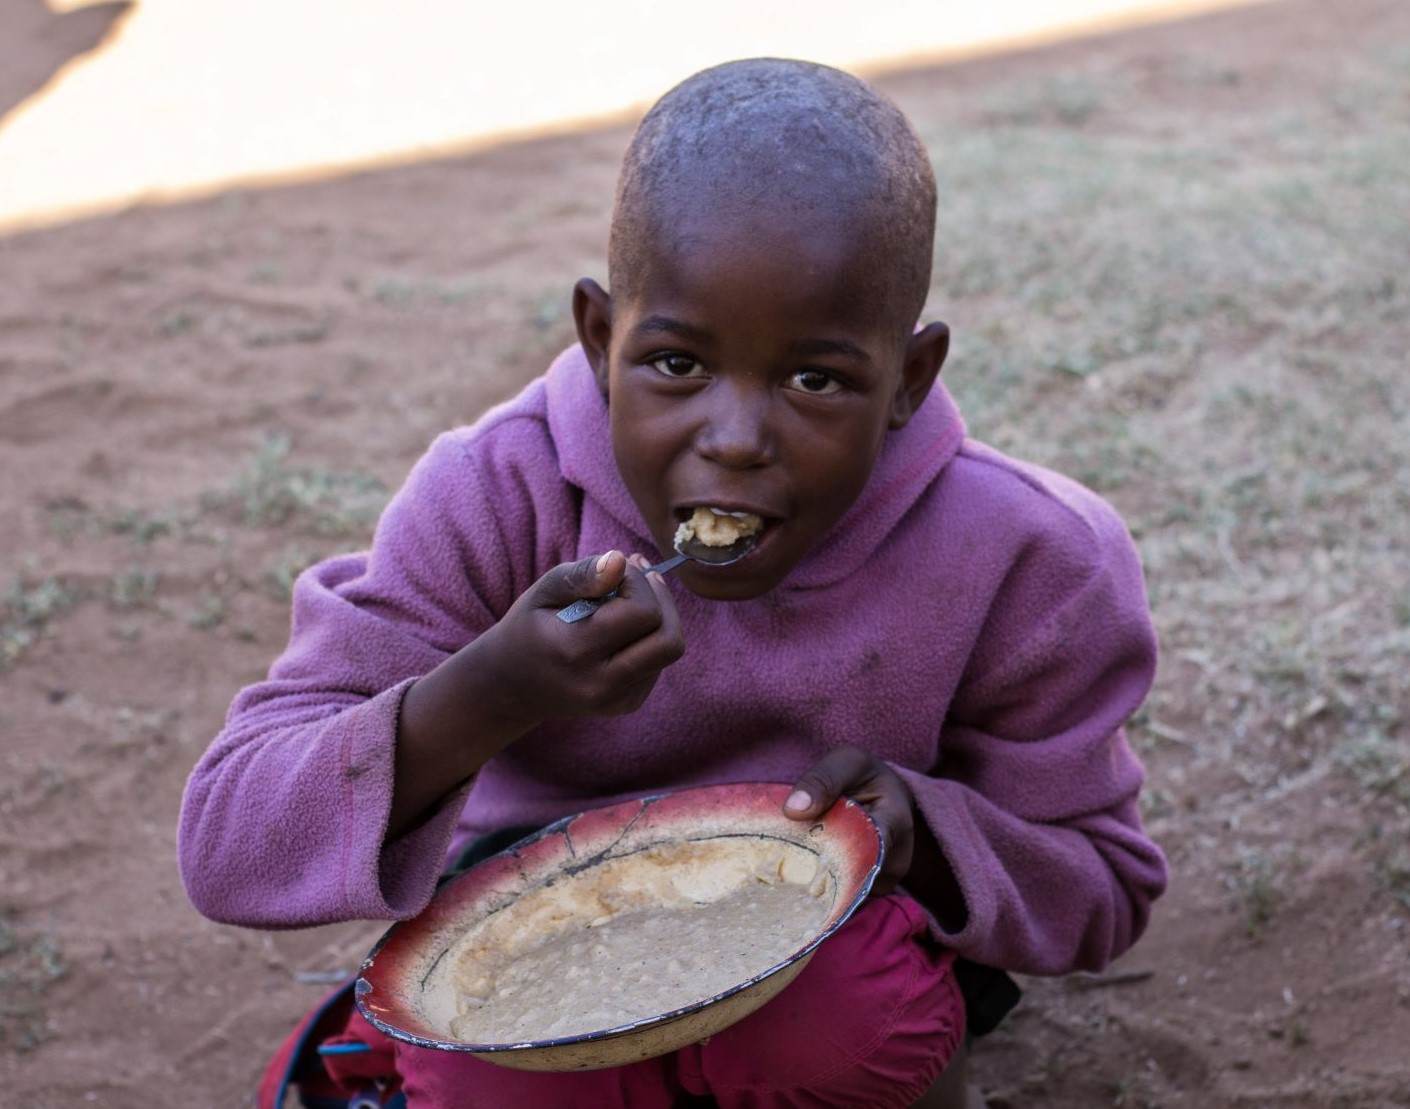 Food for Kids in Zimbabwe